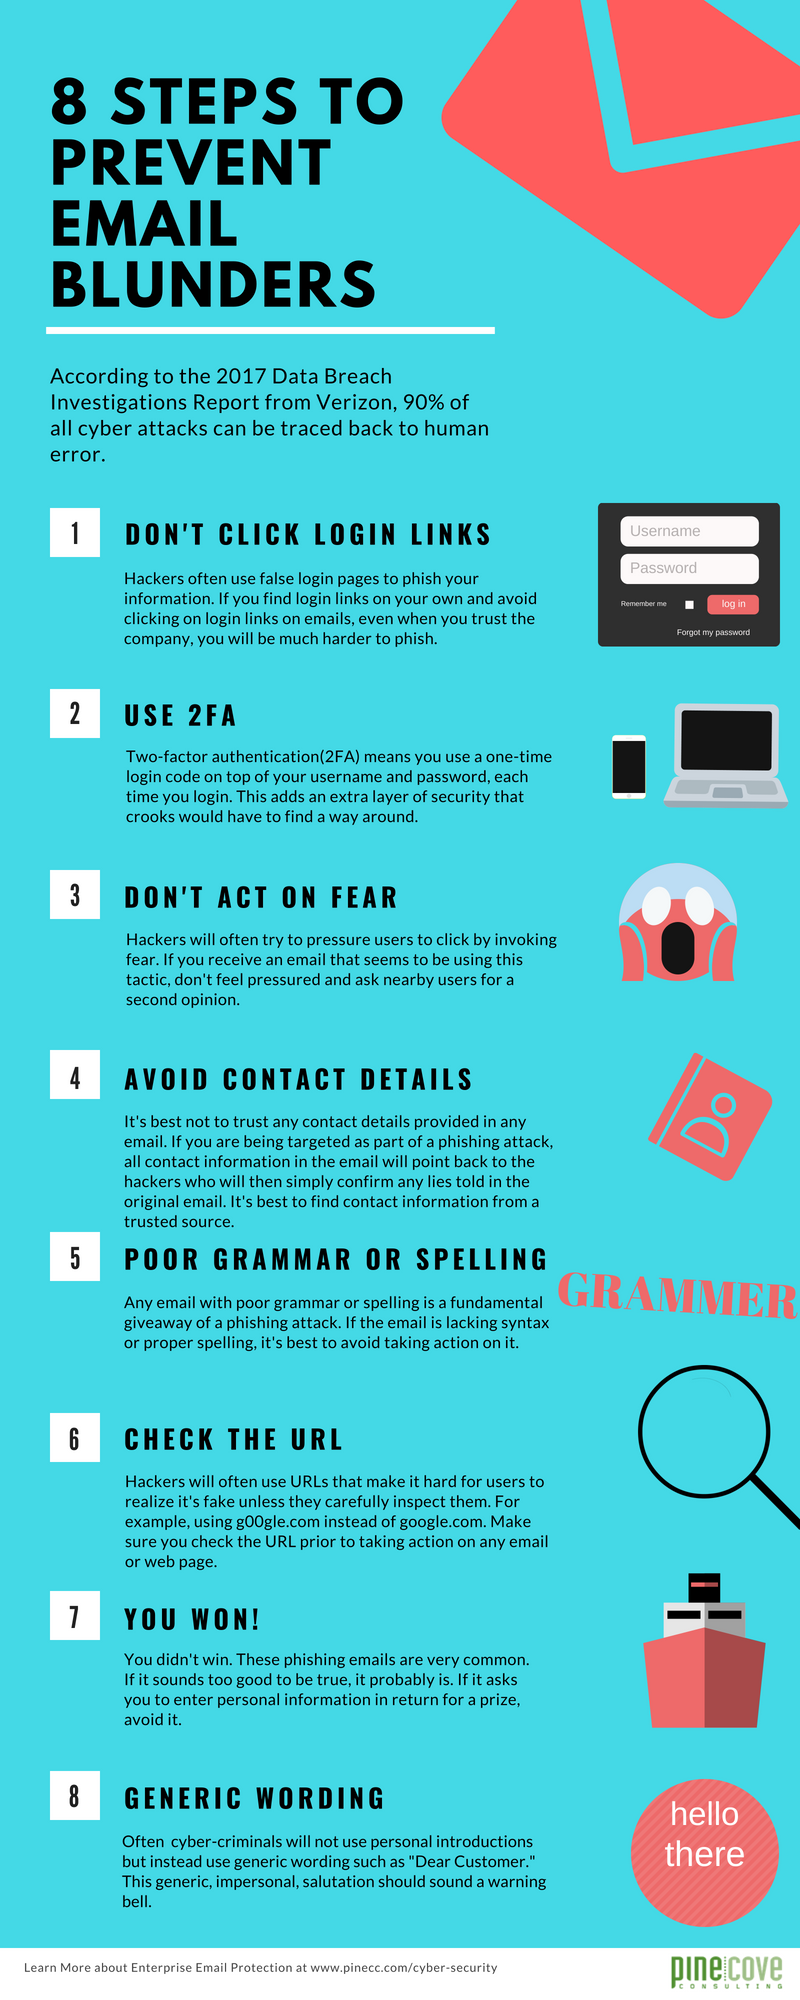 8 Steps to Prevent Email Blunders